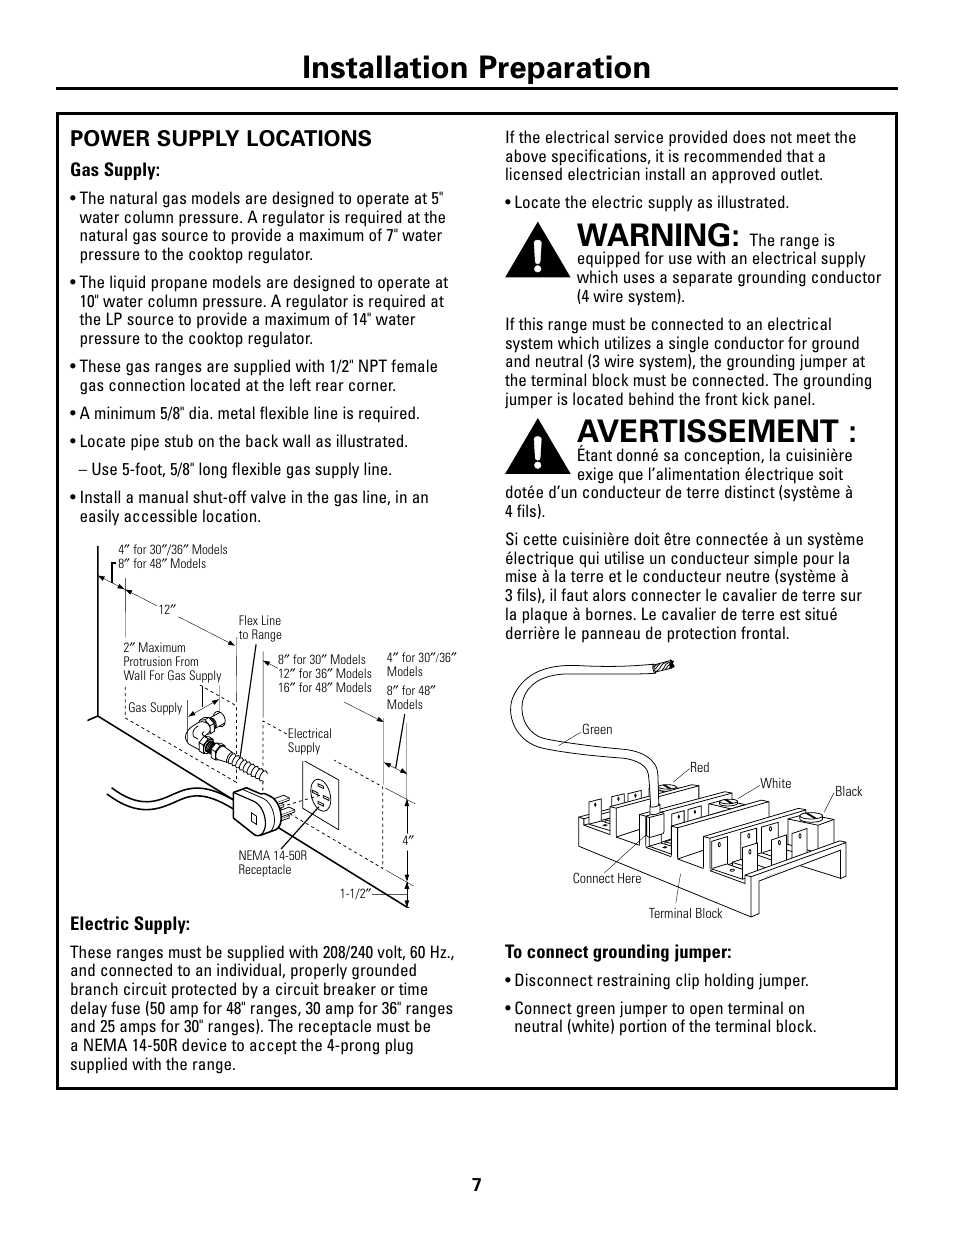 Power Supply Locations Warning Avertissement Manual Guide